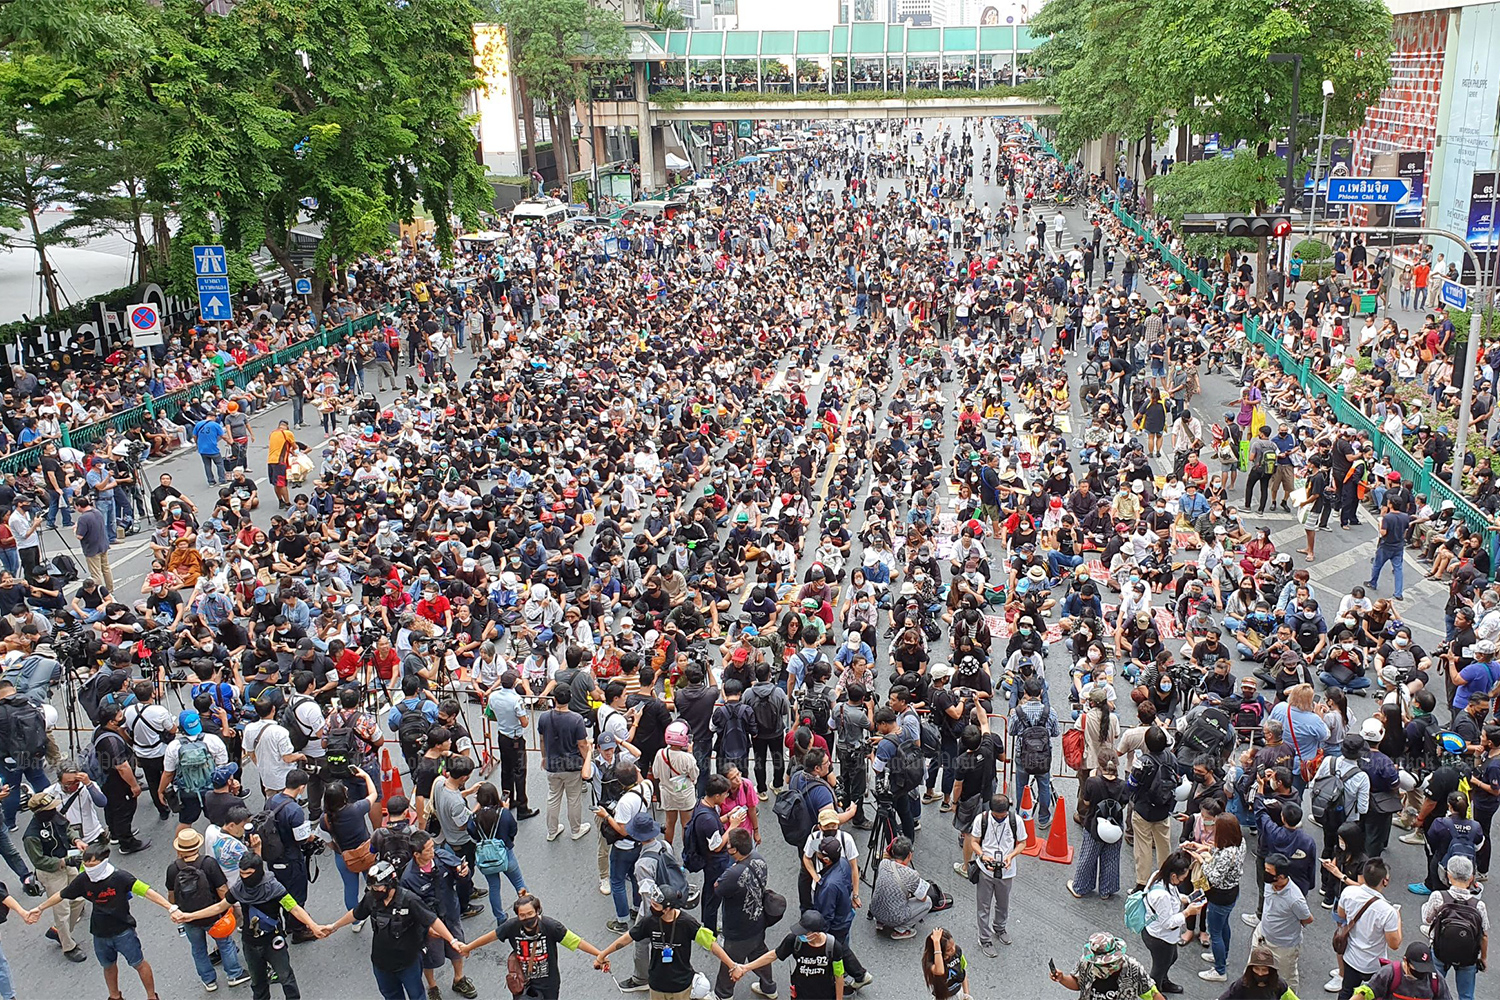 Anti-government protesters start occupying Ratchaprasong intersection for another rally against Prime Minister Prayut Chan-o-cha on Sunday. (Photo by Varuth Hirunyatheb)